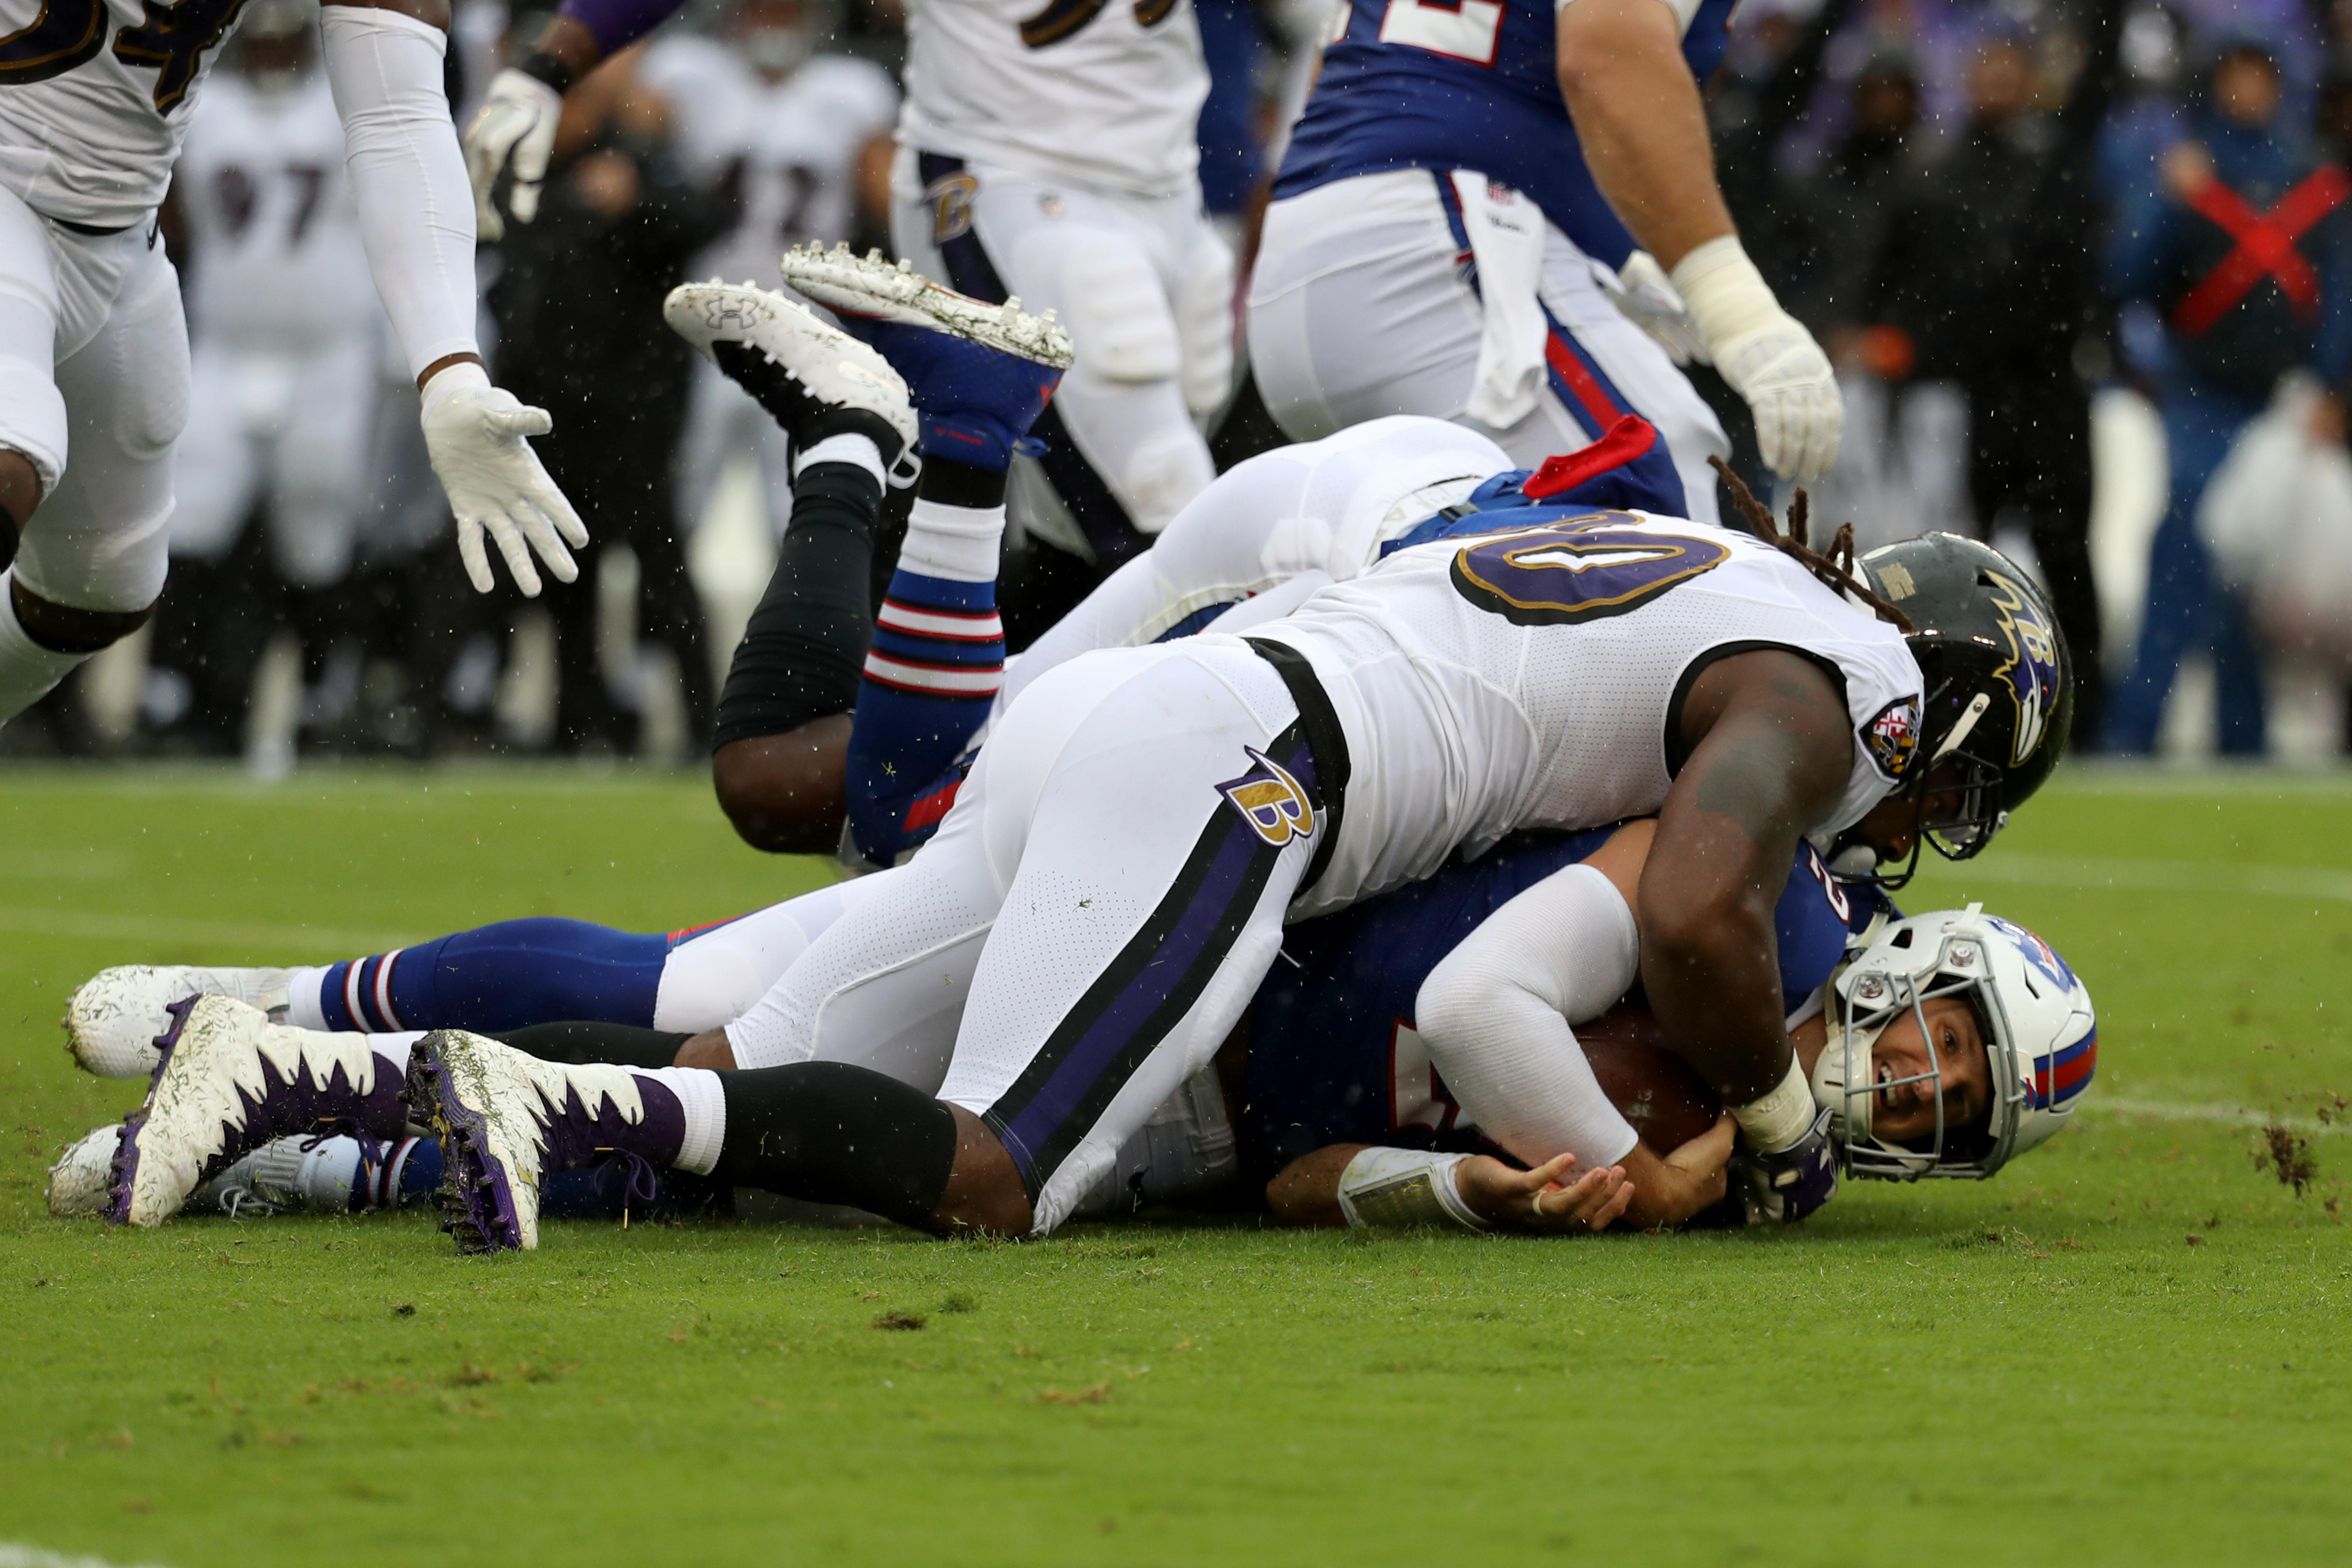 BALTIMORE, MD - SEPTEMBER 9: Nathan Peterman #2 of the Buffalo Bills is tackled by Za'Darius Smith #90 of the Baltimore Ravens in the first quarter at M&T Bank Stadium on September 9, 2018 in Baltimore, Maryland. (Photo by Rob Carr/Getty Images)